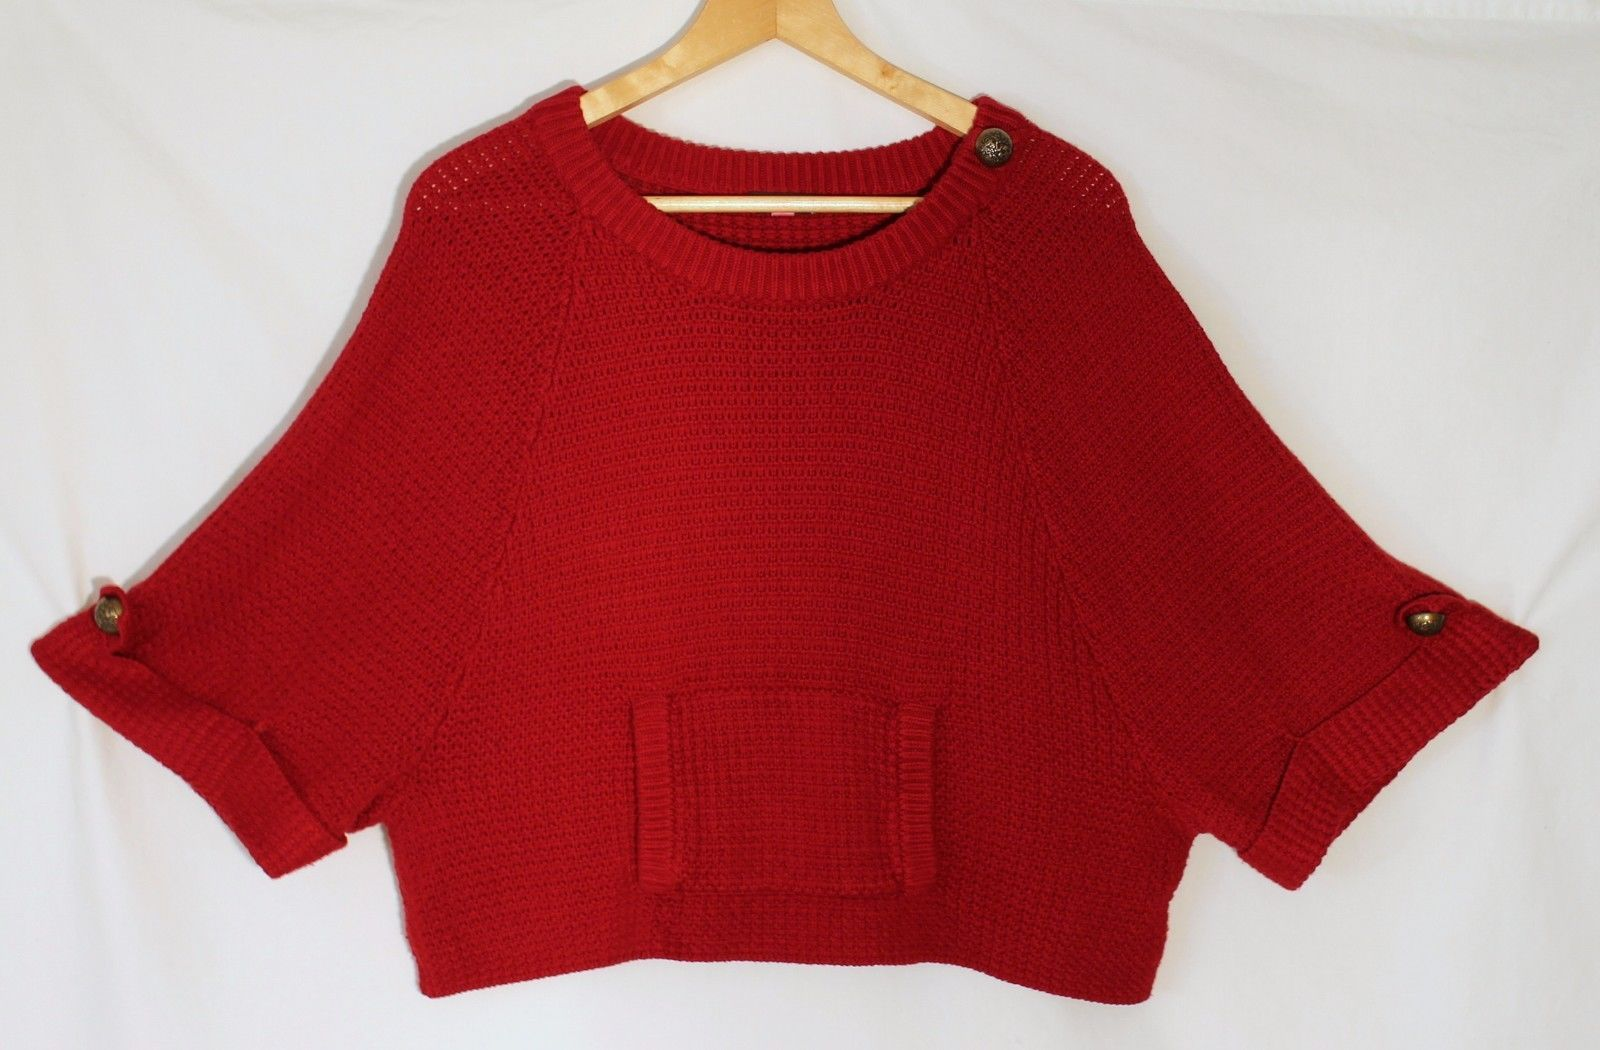 7e72fc3b0c13 S l1600. S l1600. Previous. Vince Camuto Ruby Red Kangaroo Pocket Sweater  Cropped Dolman Short Sleeves ...